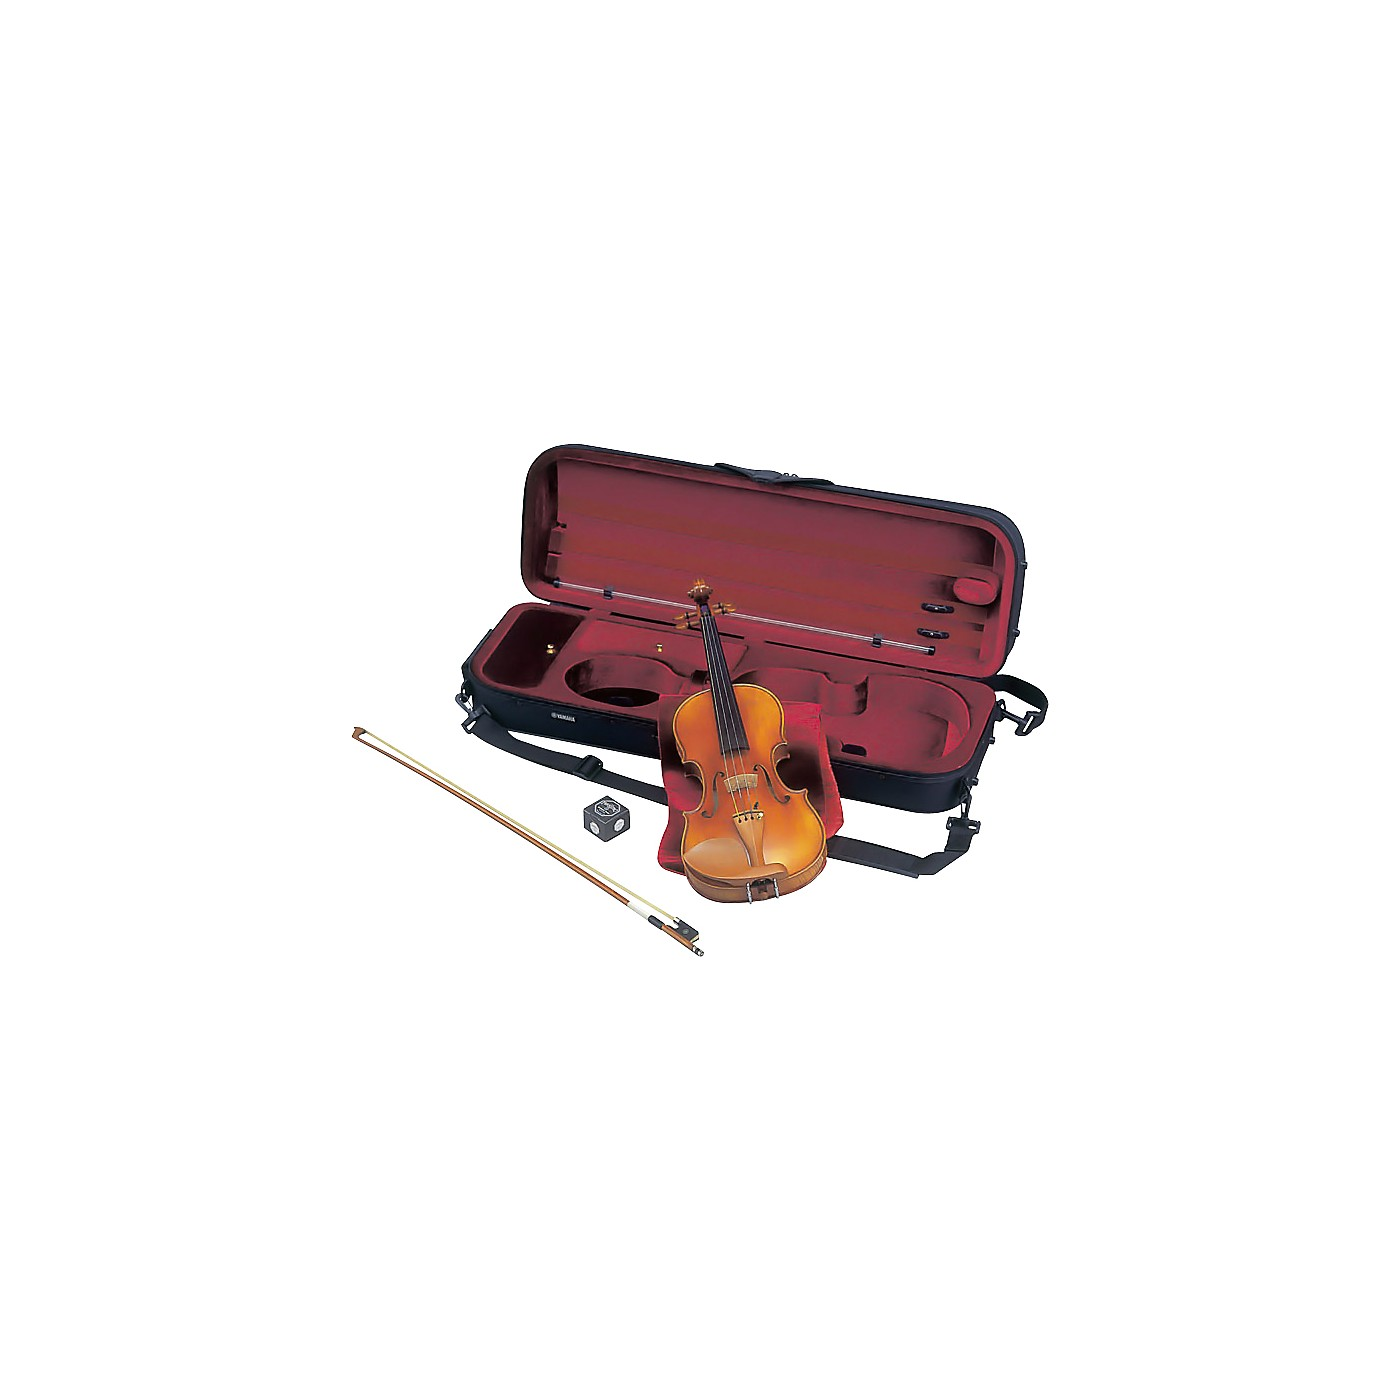 Yamaha Intermediate Model AV20 violin thumbnail